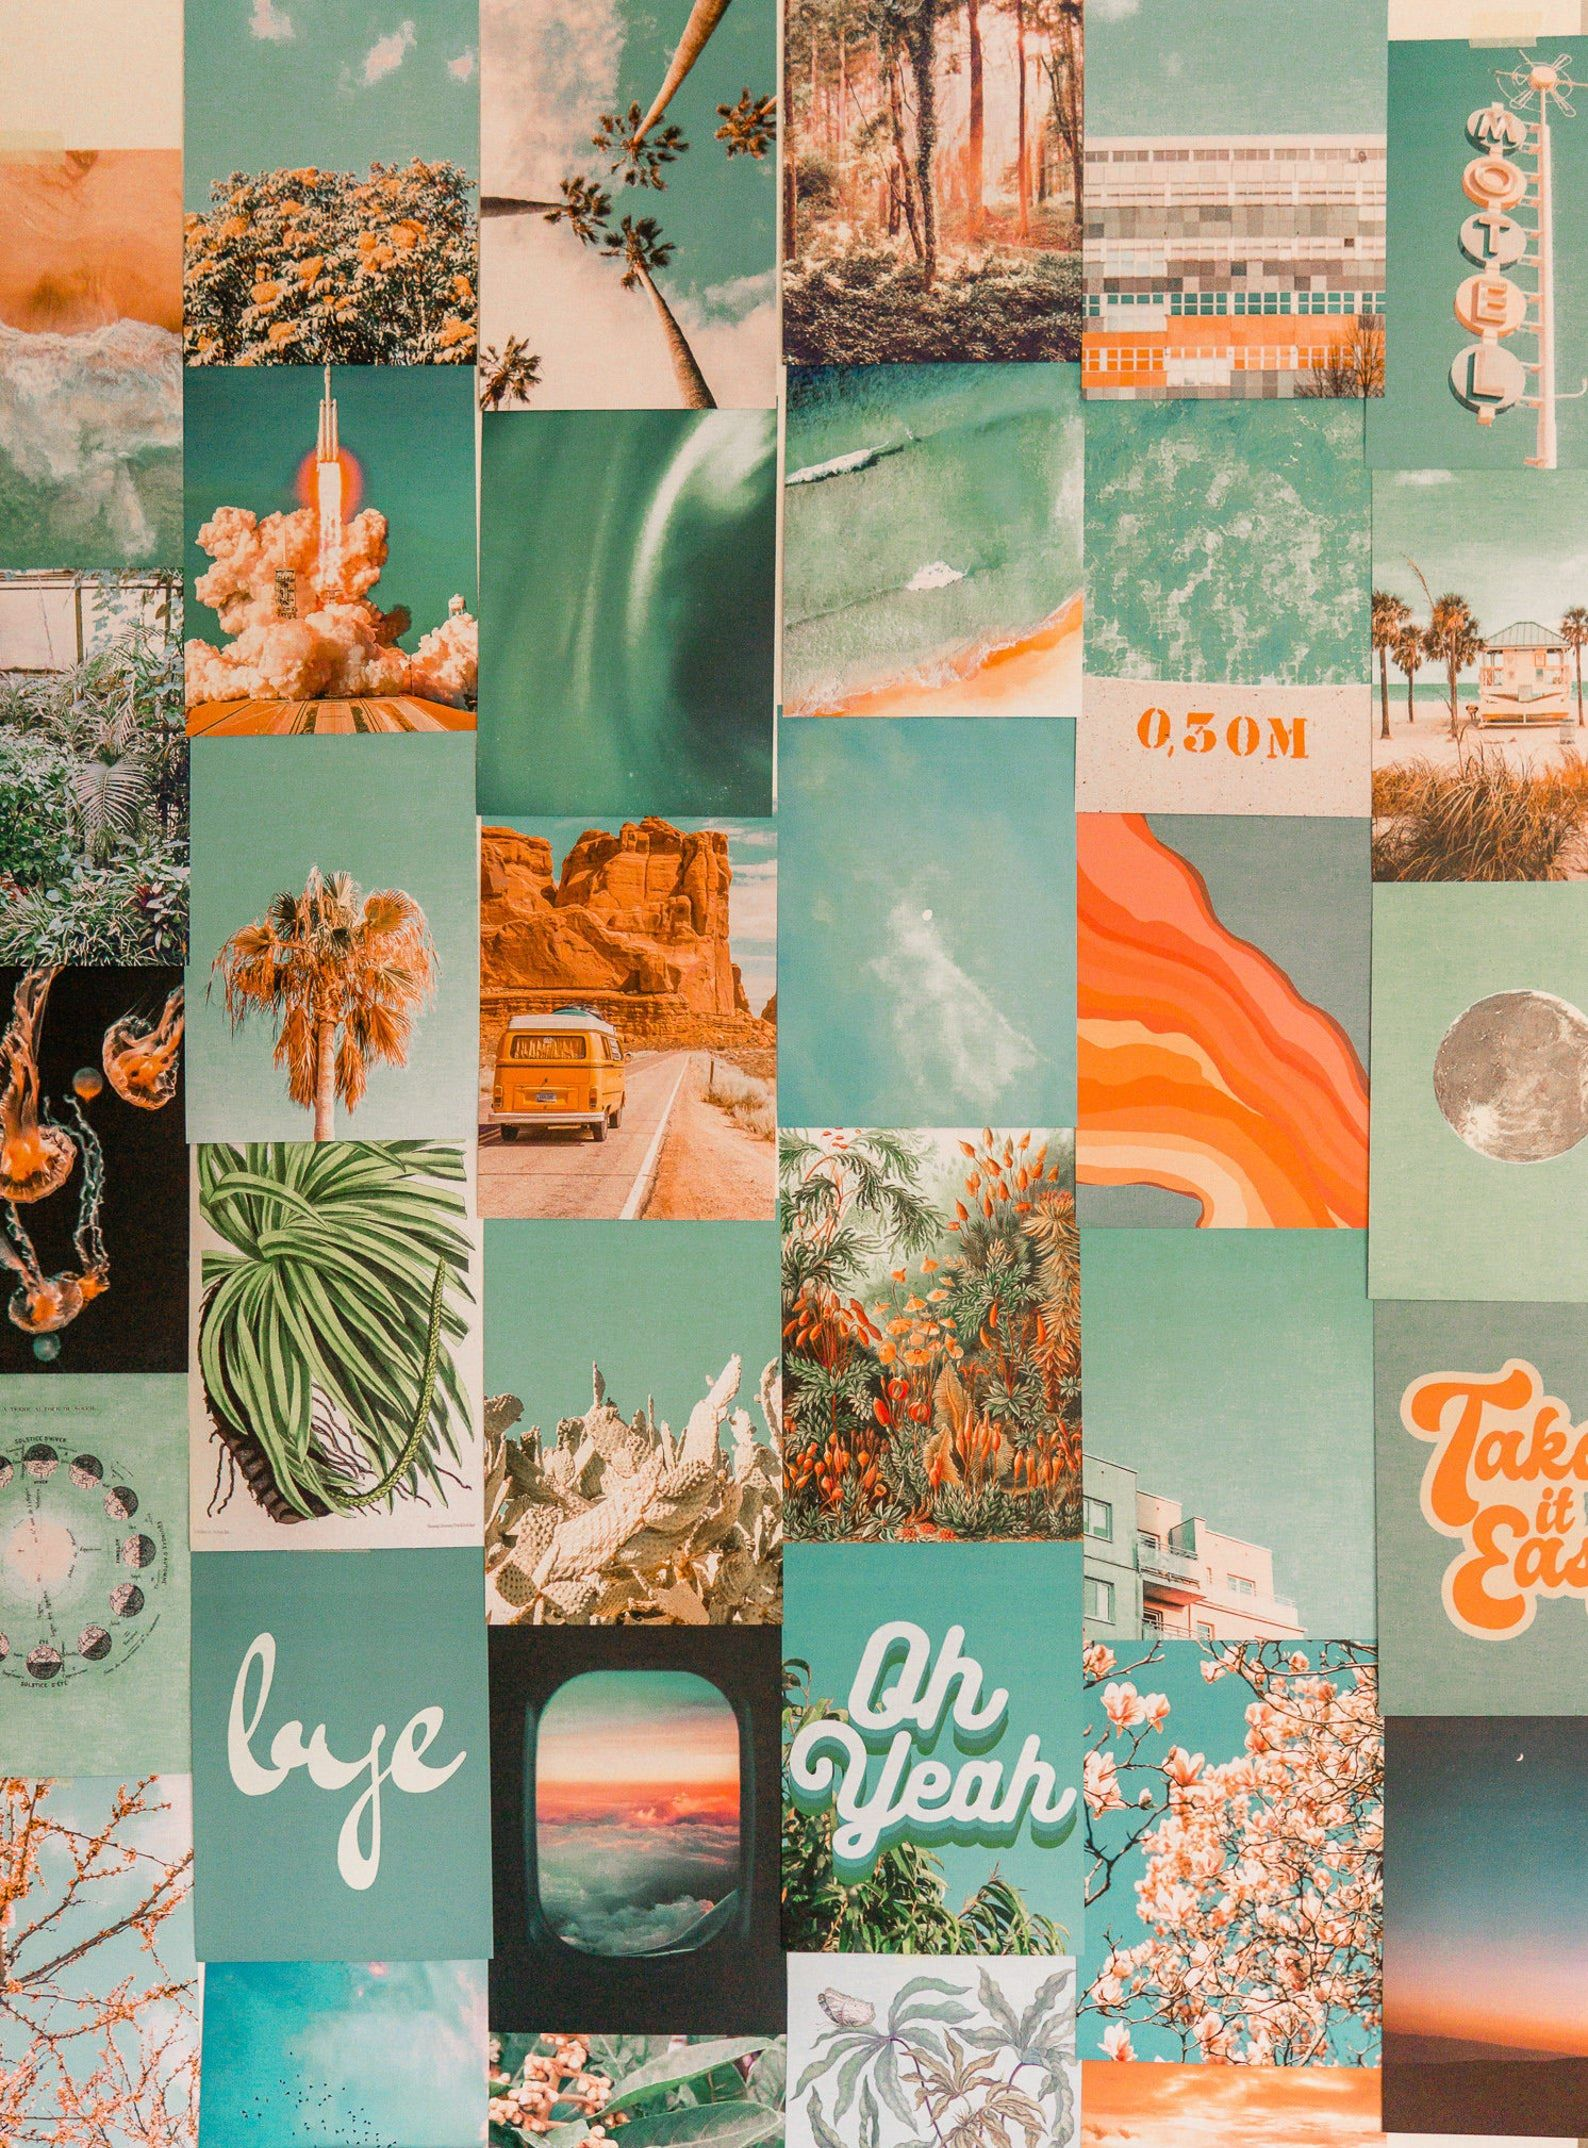 Orange And Teal In 2020 Wall Collage Decor Photo Wall Collage Wall Collage